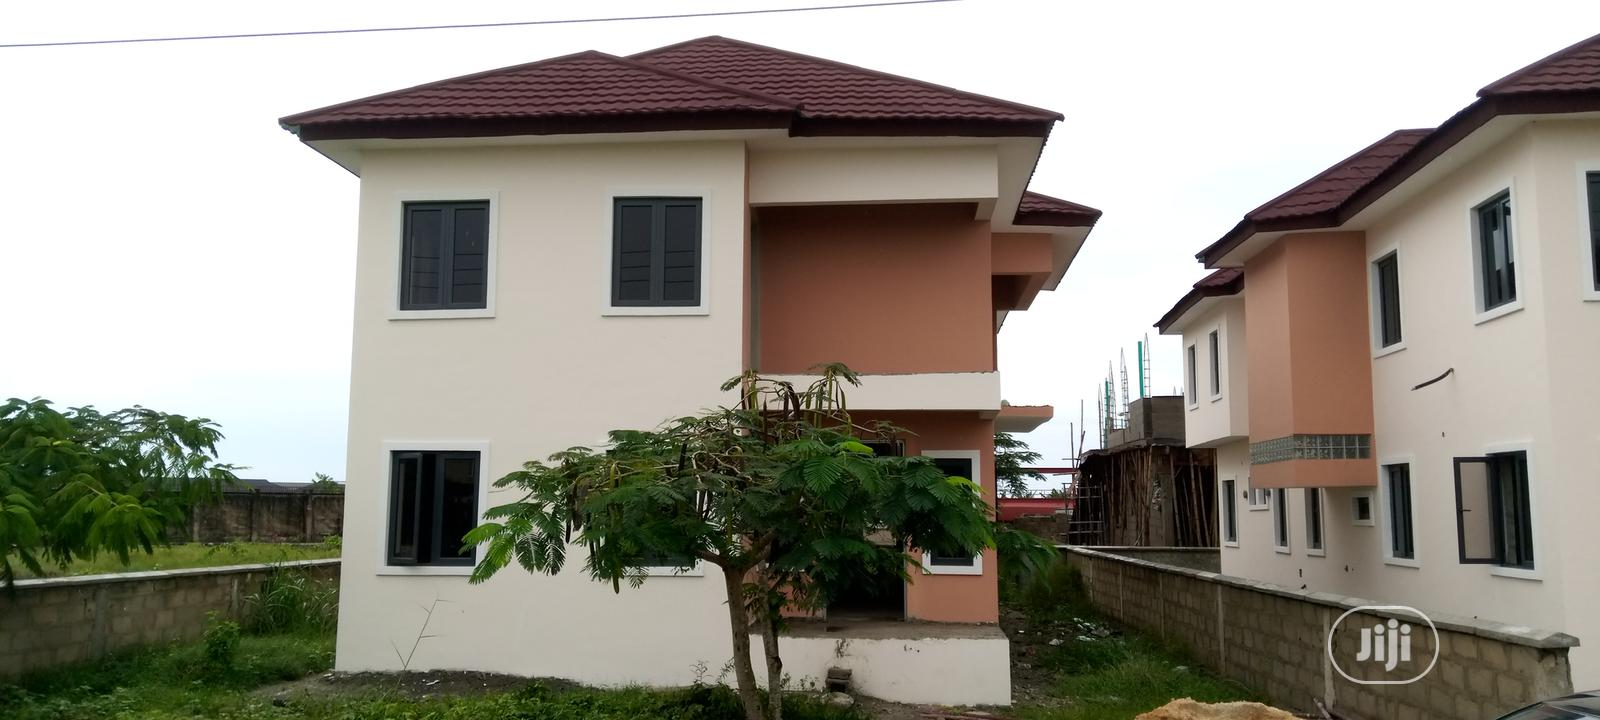 4 Bedroom- Duplex Now Selling At Sapphire Garden Estate | Houses & Apartments For Sale for sale in Lekki Expressway, Lekki, Nigeria